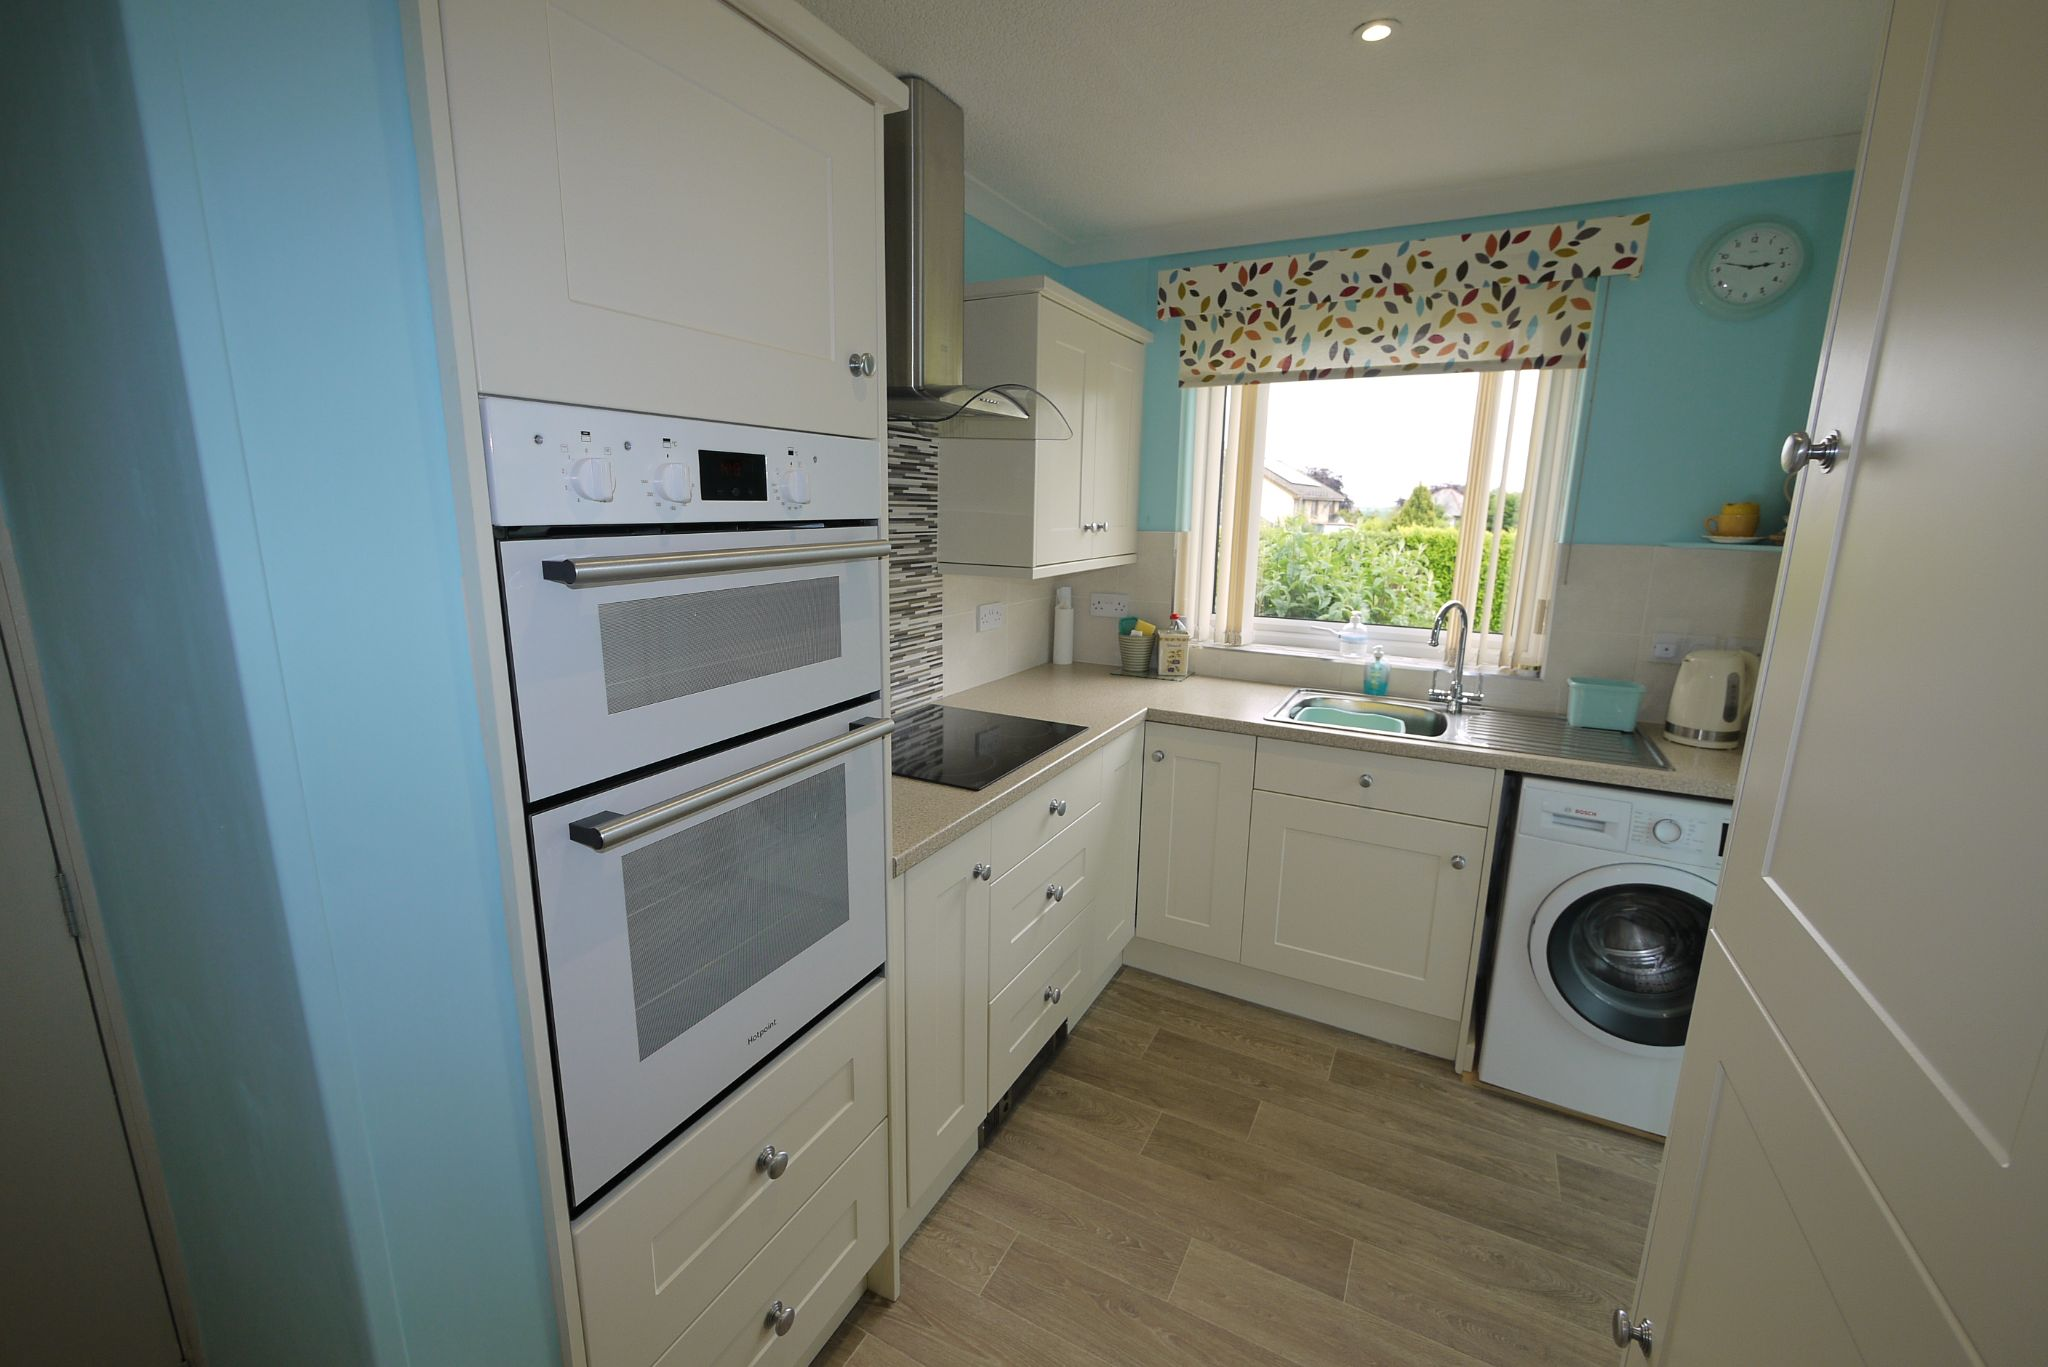 2 bedroom detached bungalow SSTC in Brighouse - Kitchen 1.